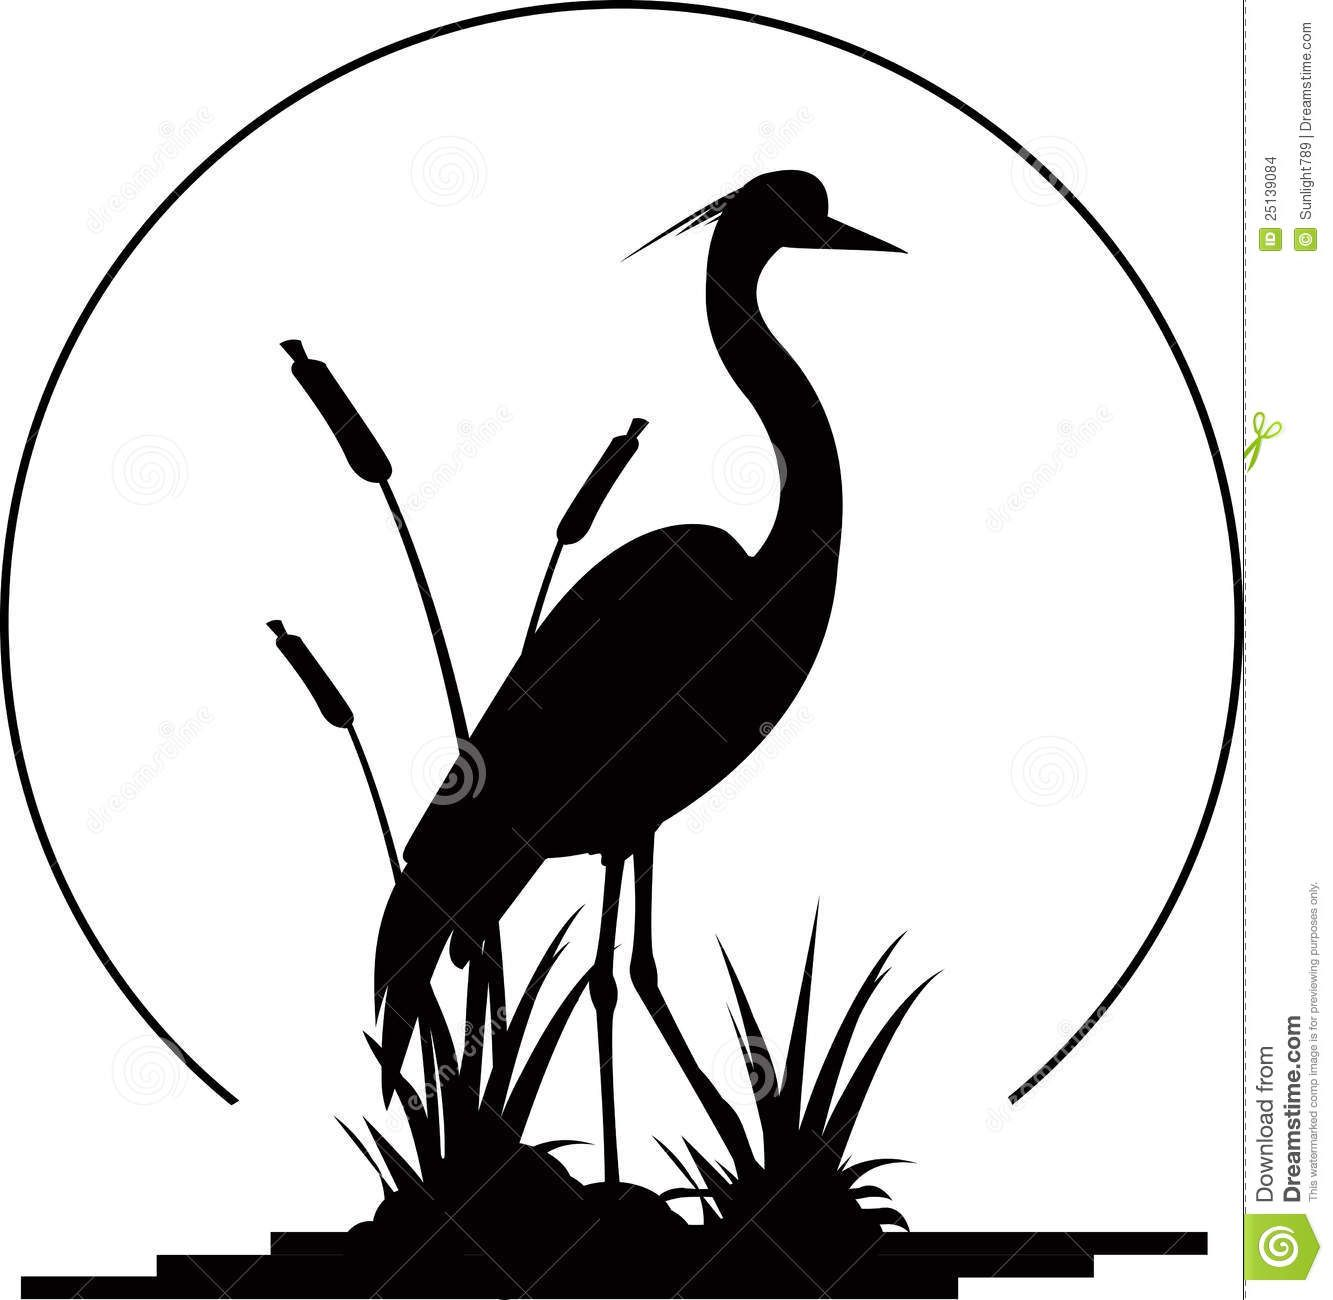 images for u003e flying egret clipart flamingo flamand rose art rh pinterest com au heron clipart black and white blue heron clipart free